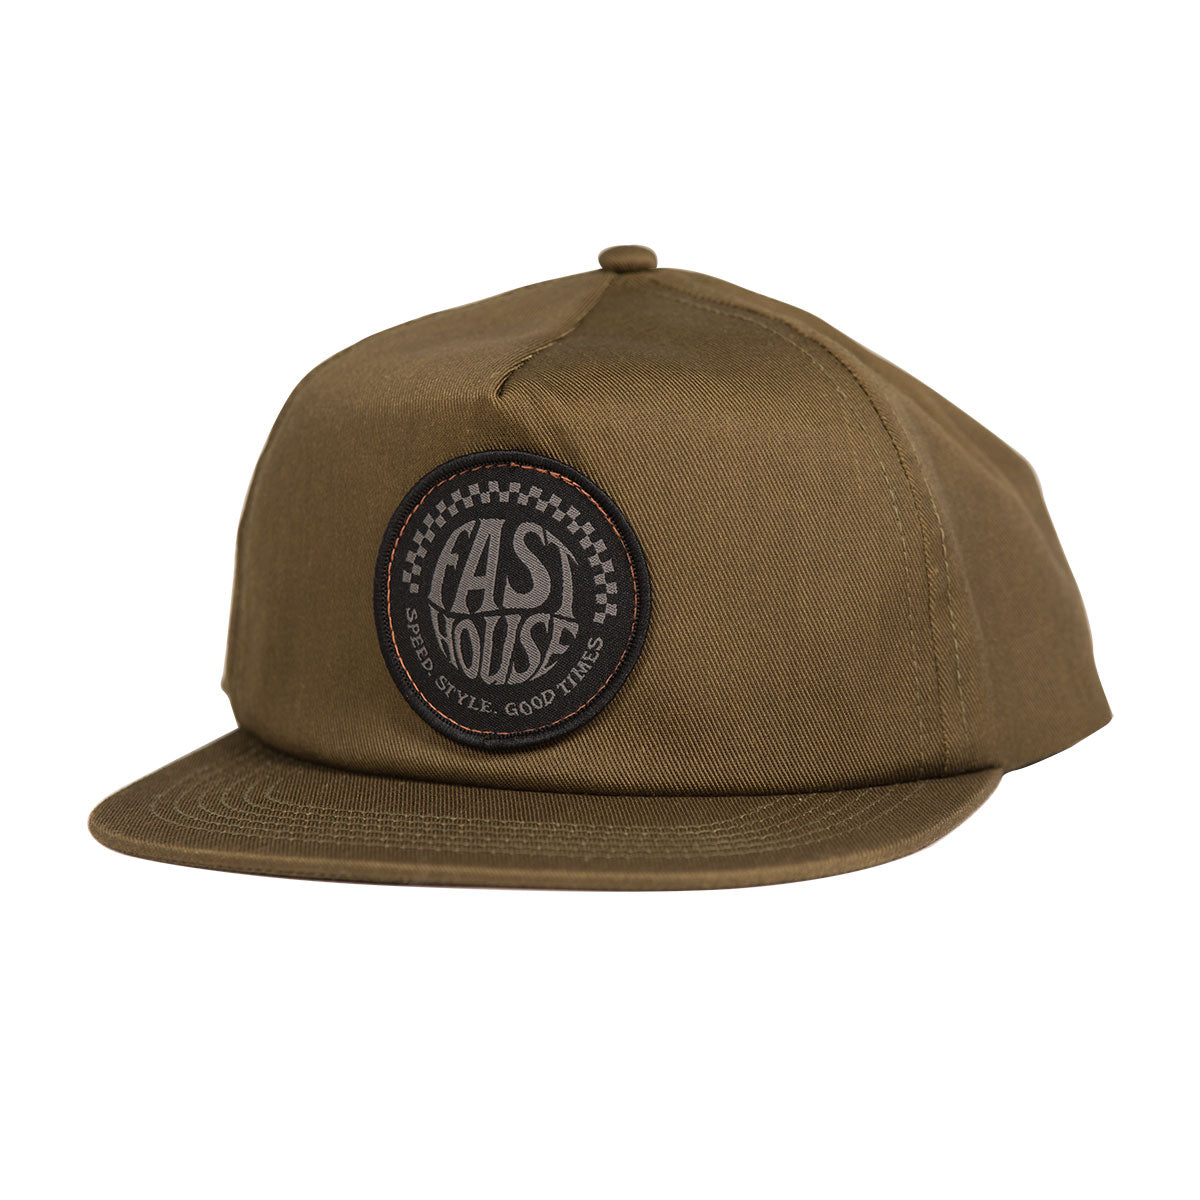 Fasthouse - Stamped Spade Hat - Olive